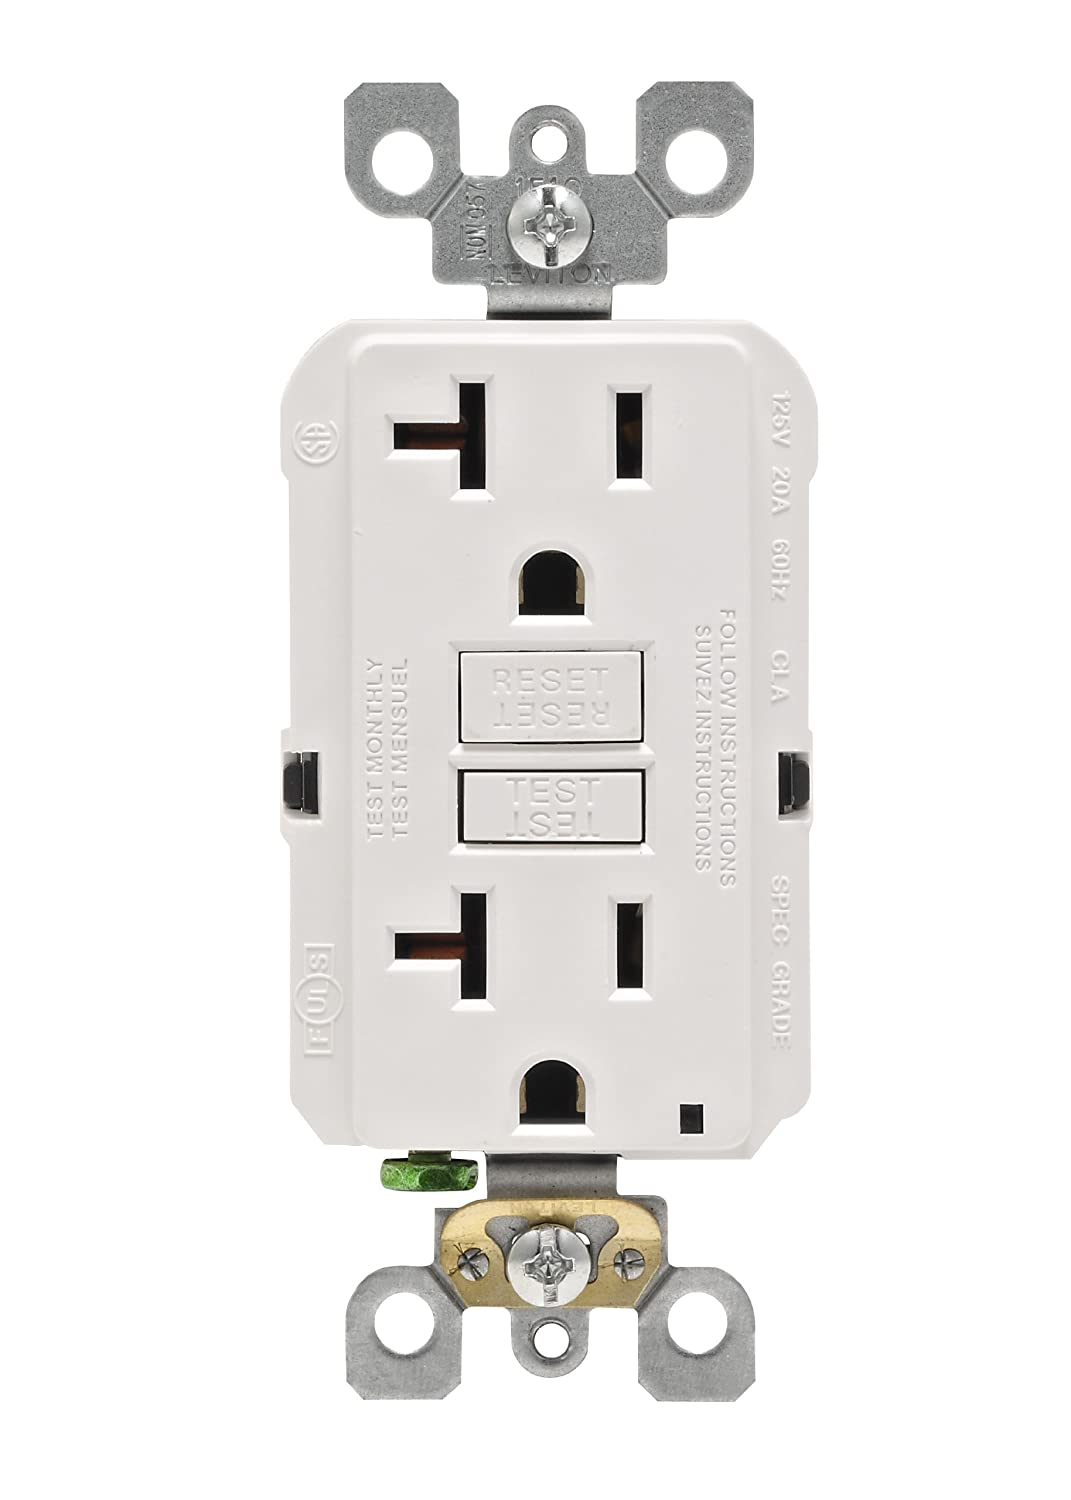 Leviton N7899 W 20 Amp 125 Volt Smartlock Pro Slim Non Tamper Gfci Wiring Multiple Outlets Diagram Furthermore Outlet Resistant Duplex Receptacle White Ground Fault Circuit Interrupter Amazon